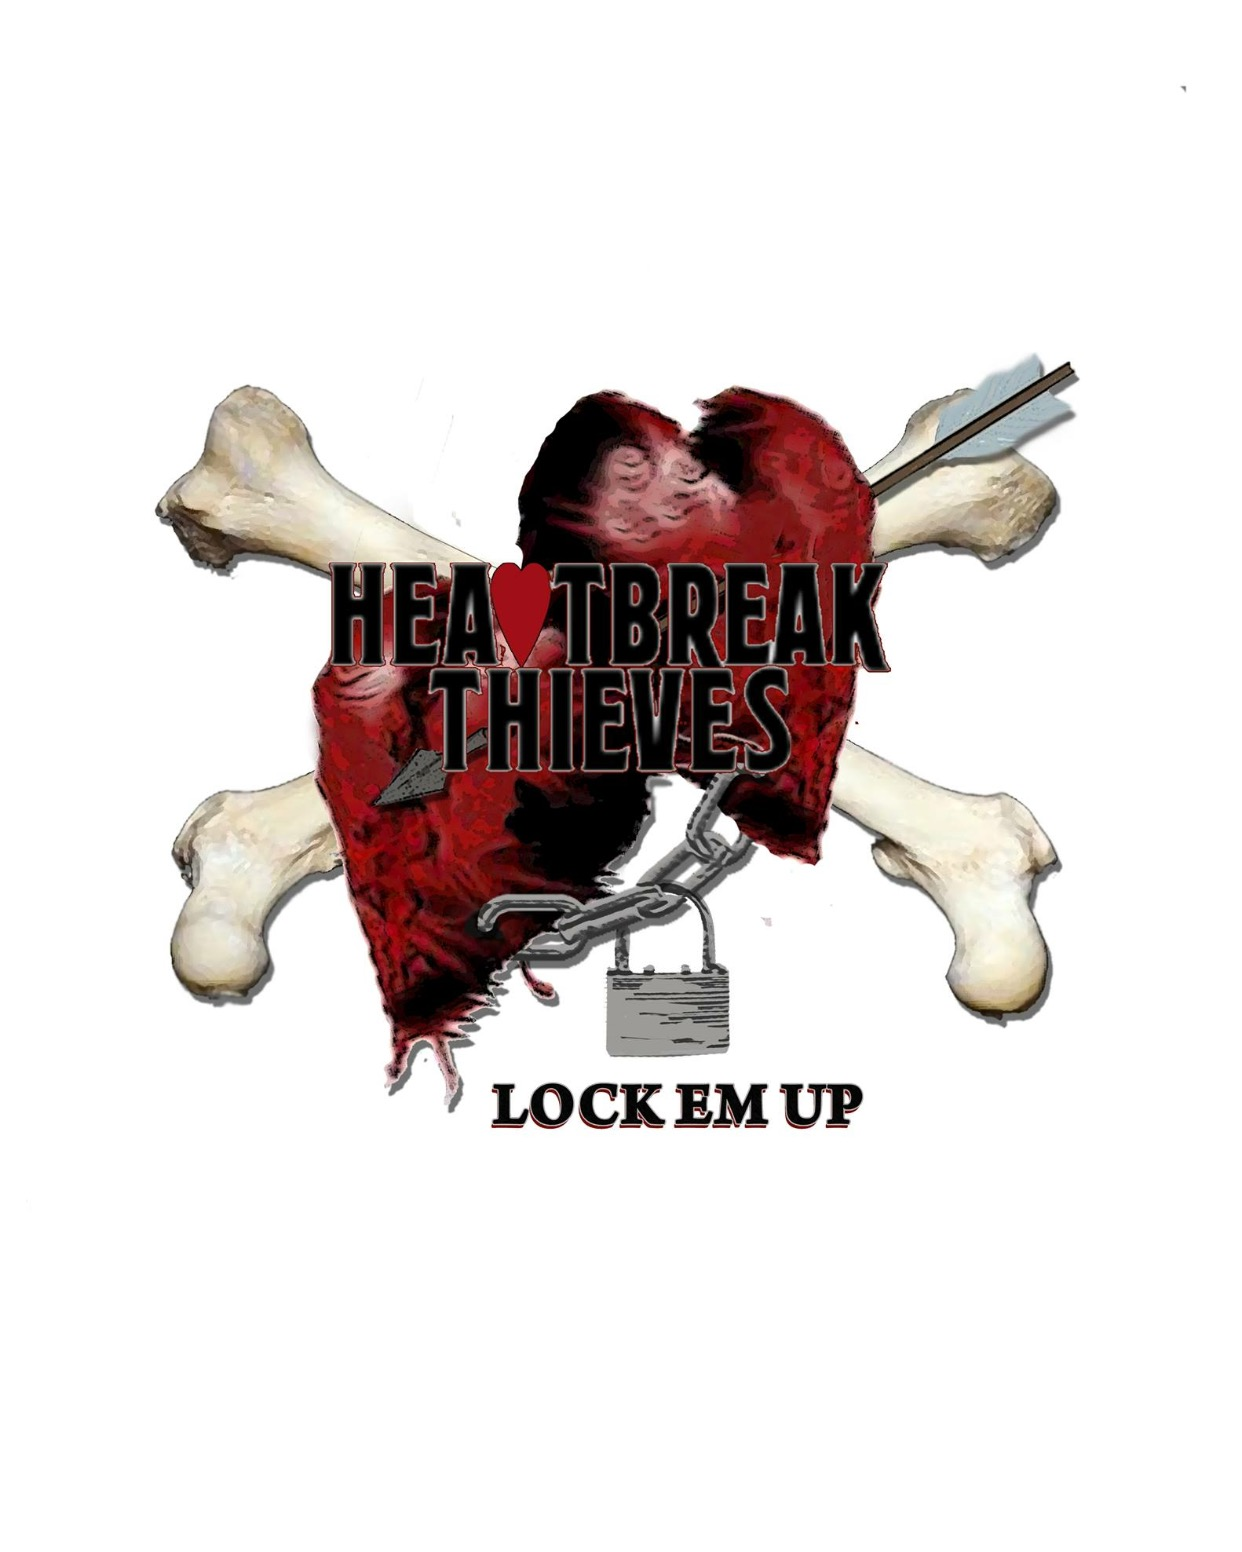 http://indiemusicpeople.com/Uploads/Heartbreak_Thieves_-_IMG_0130.PNG